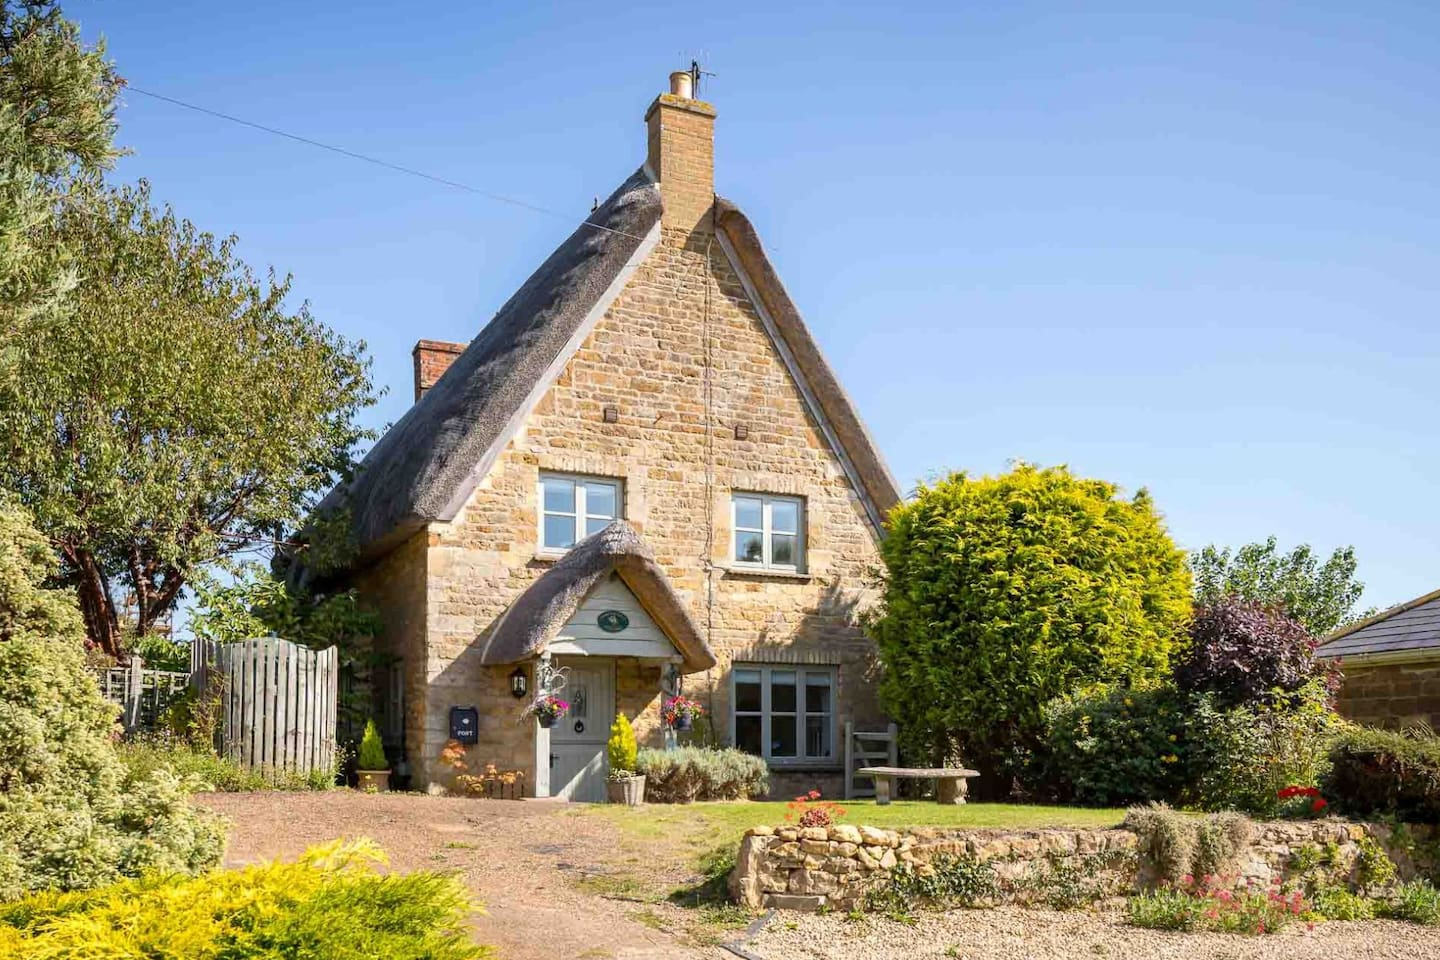 The idyllic Honeysuckle Cottage, peacefully located in the picturesque village of Sutton-under-Brailes